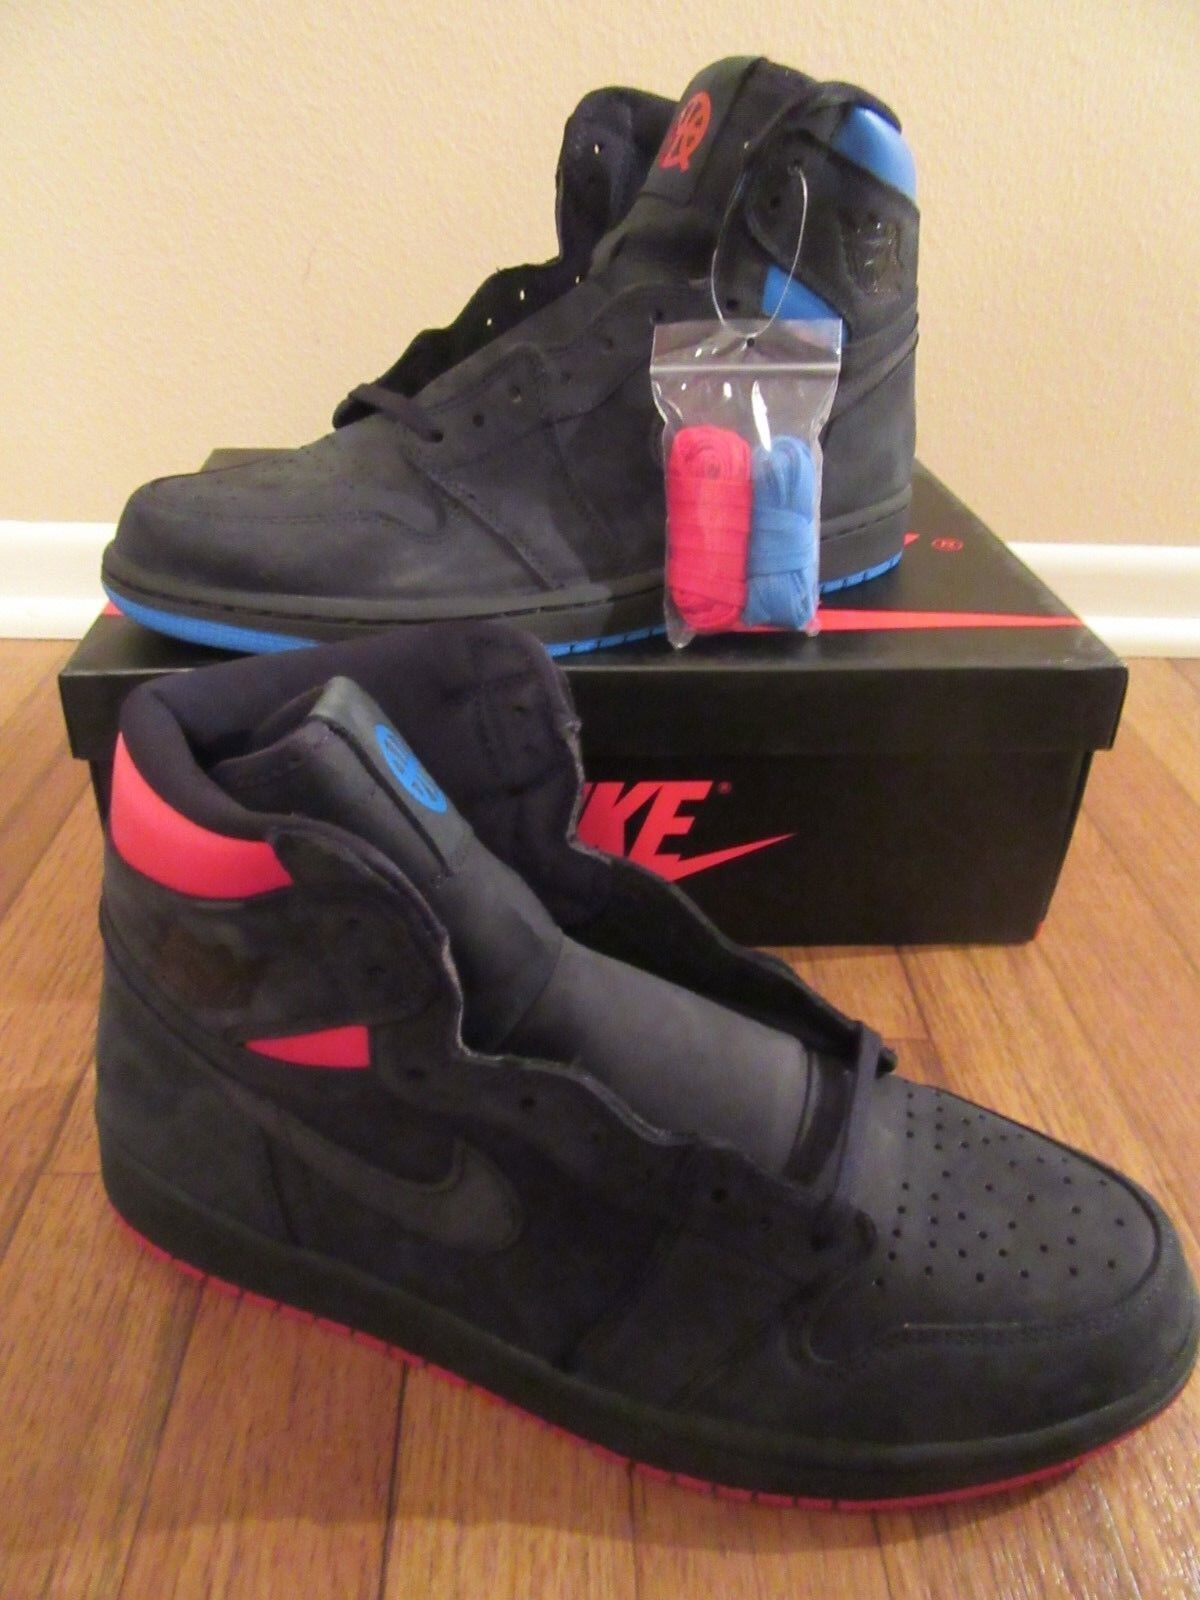 info for f7b69 0ea0a Nike Air Jordan 1 Retro High OG Q54 Size 11 Black Italy Blue AH1040 054  Quai 54